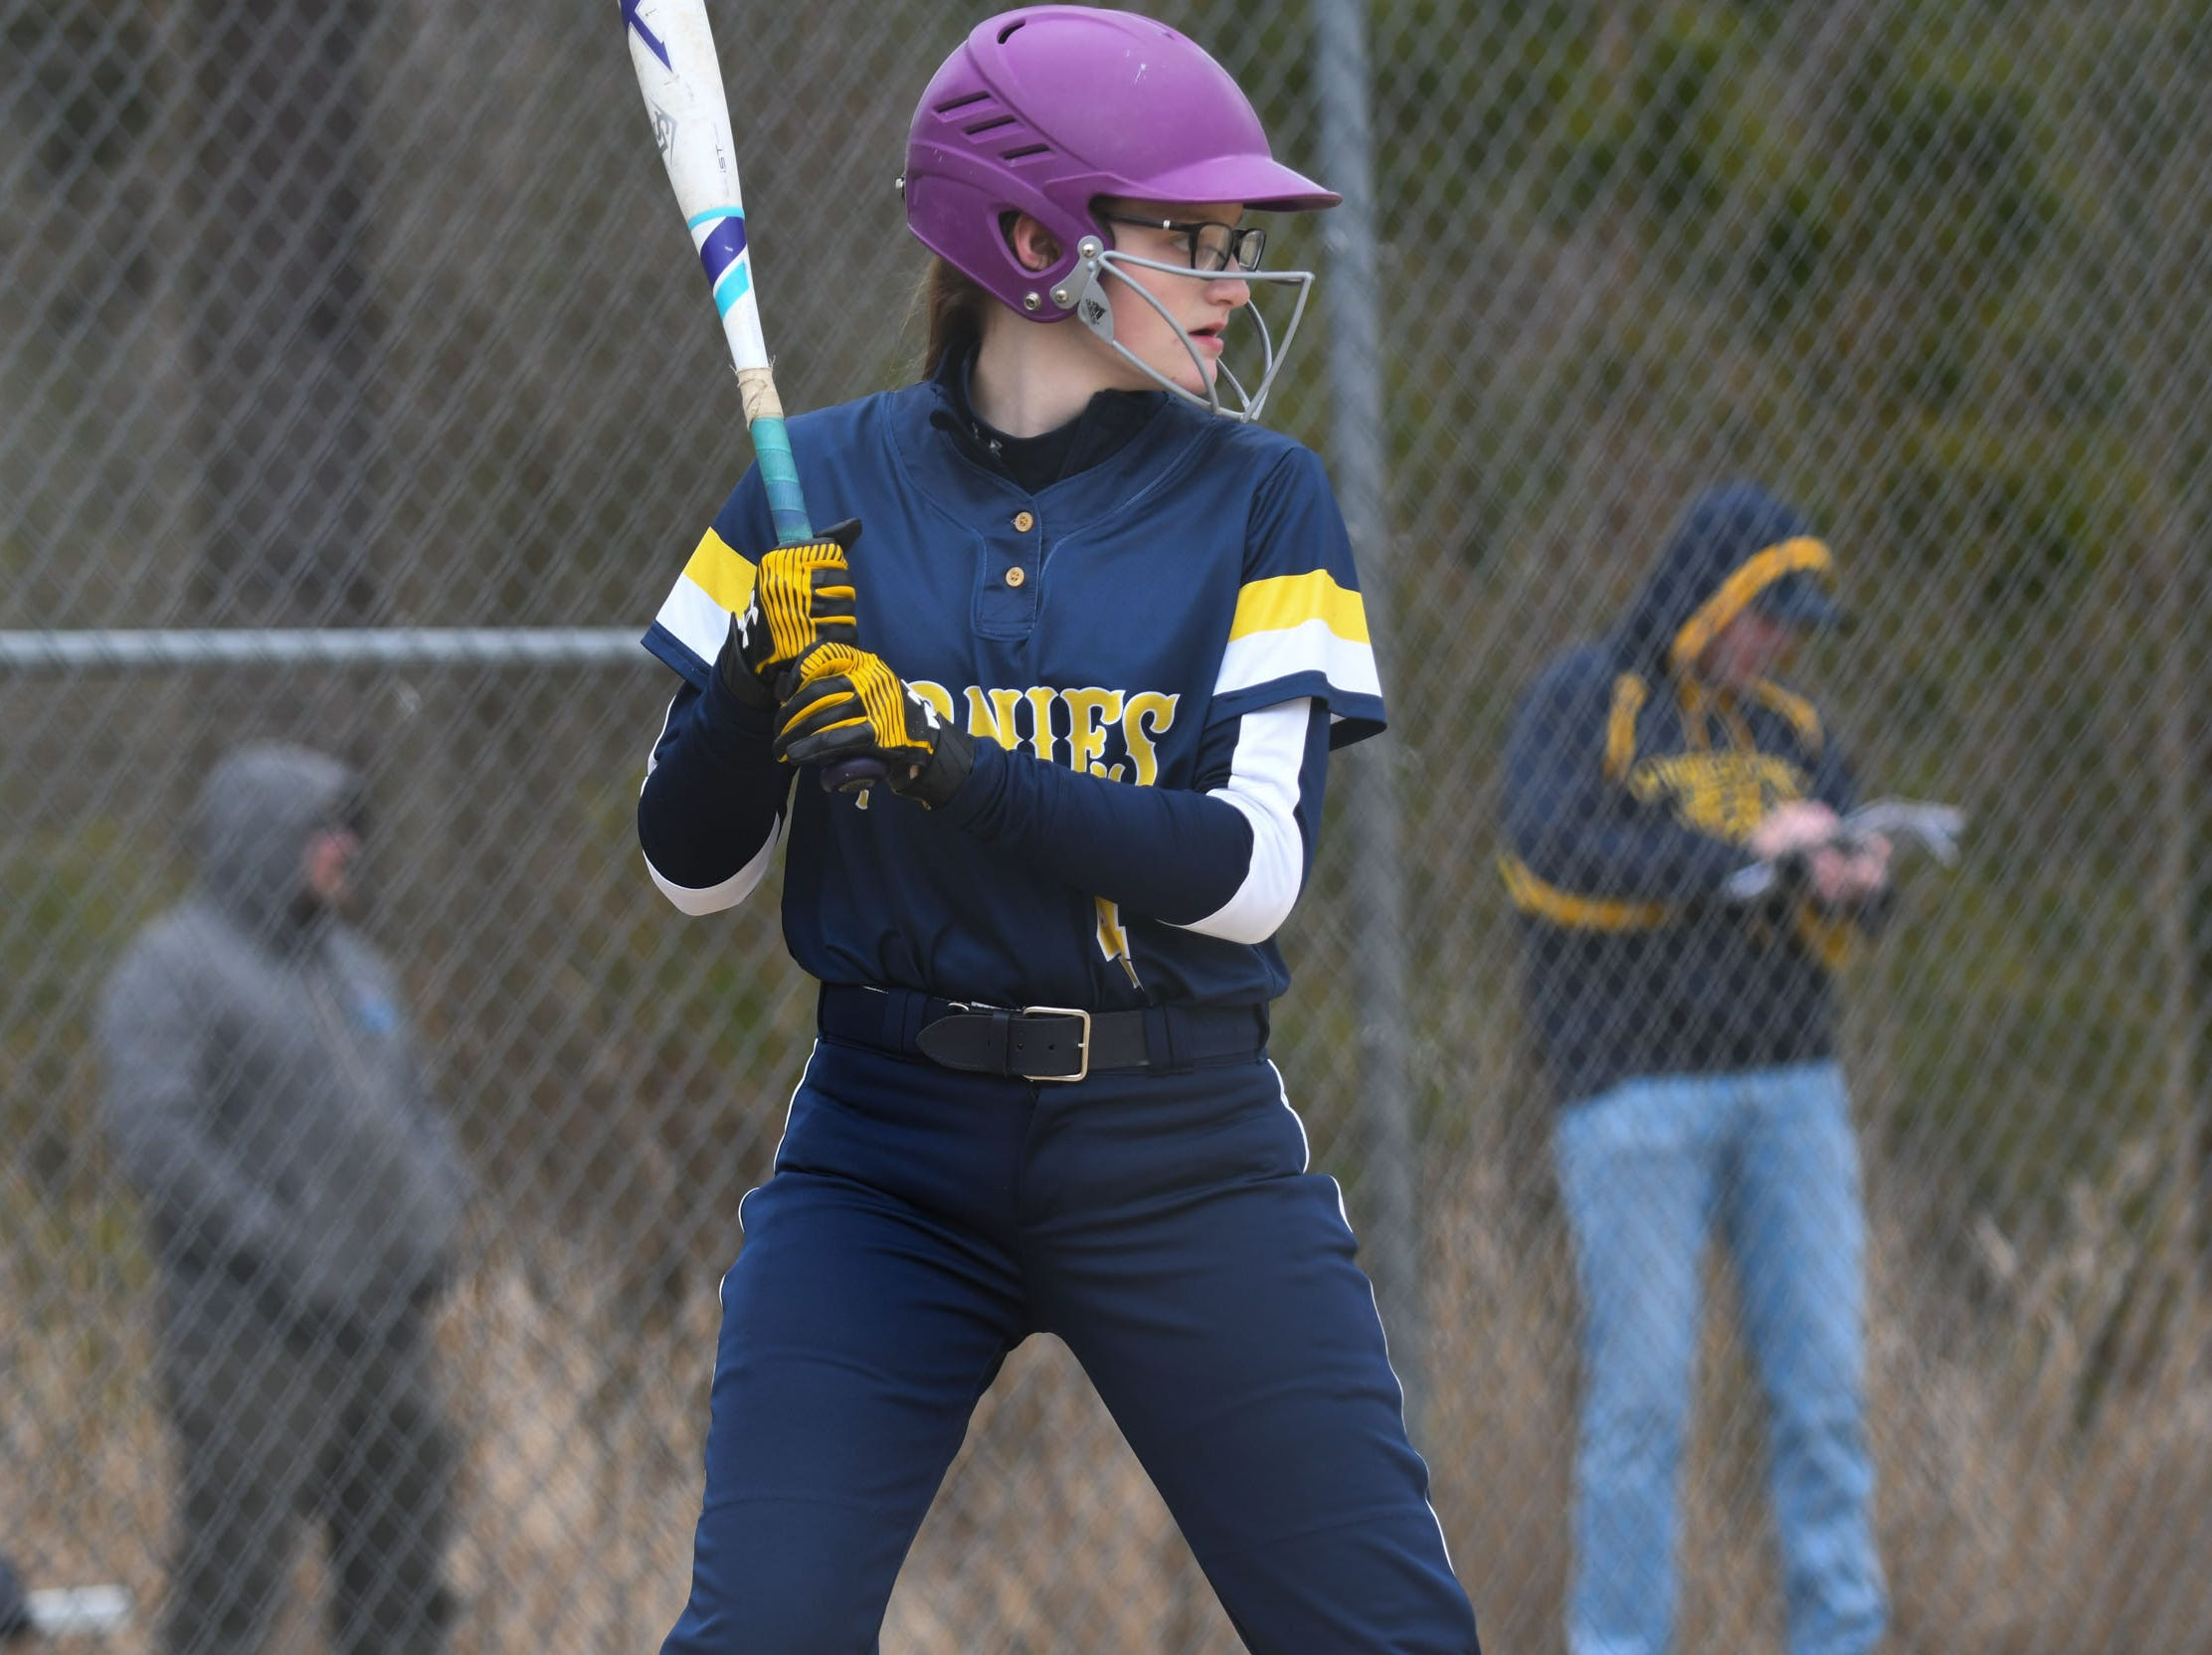 Chincoteague's Kelsey Malone at bat against Holly Grove on Wednesday, March 20, 2019 in Westover, Md.